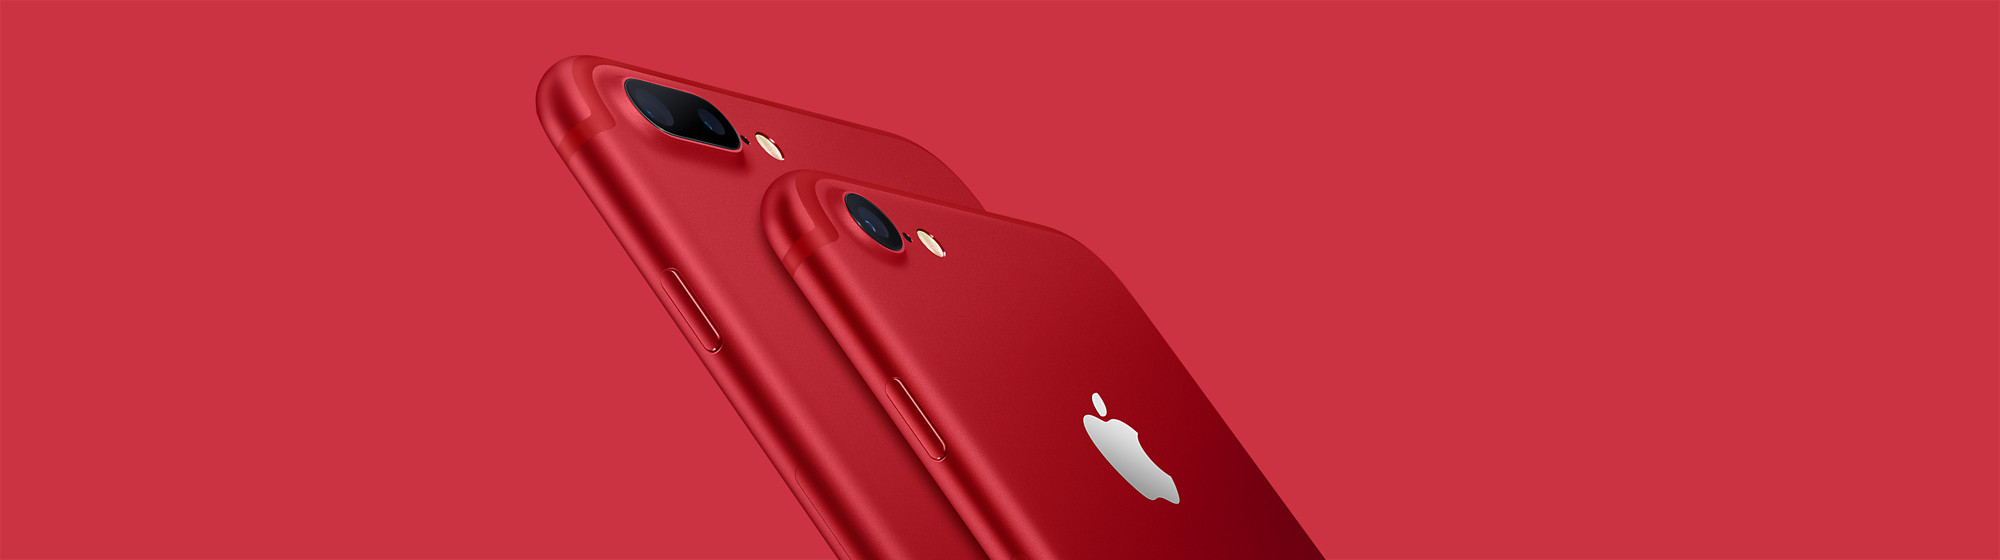 iPhone 7 in red